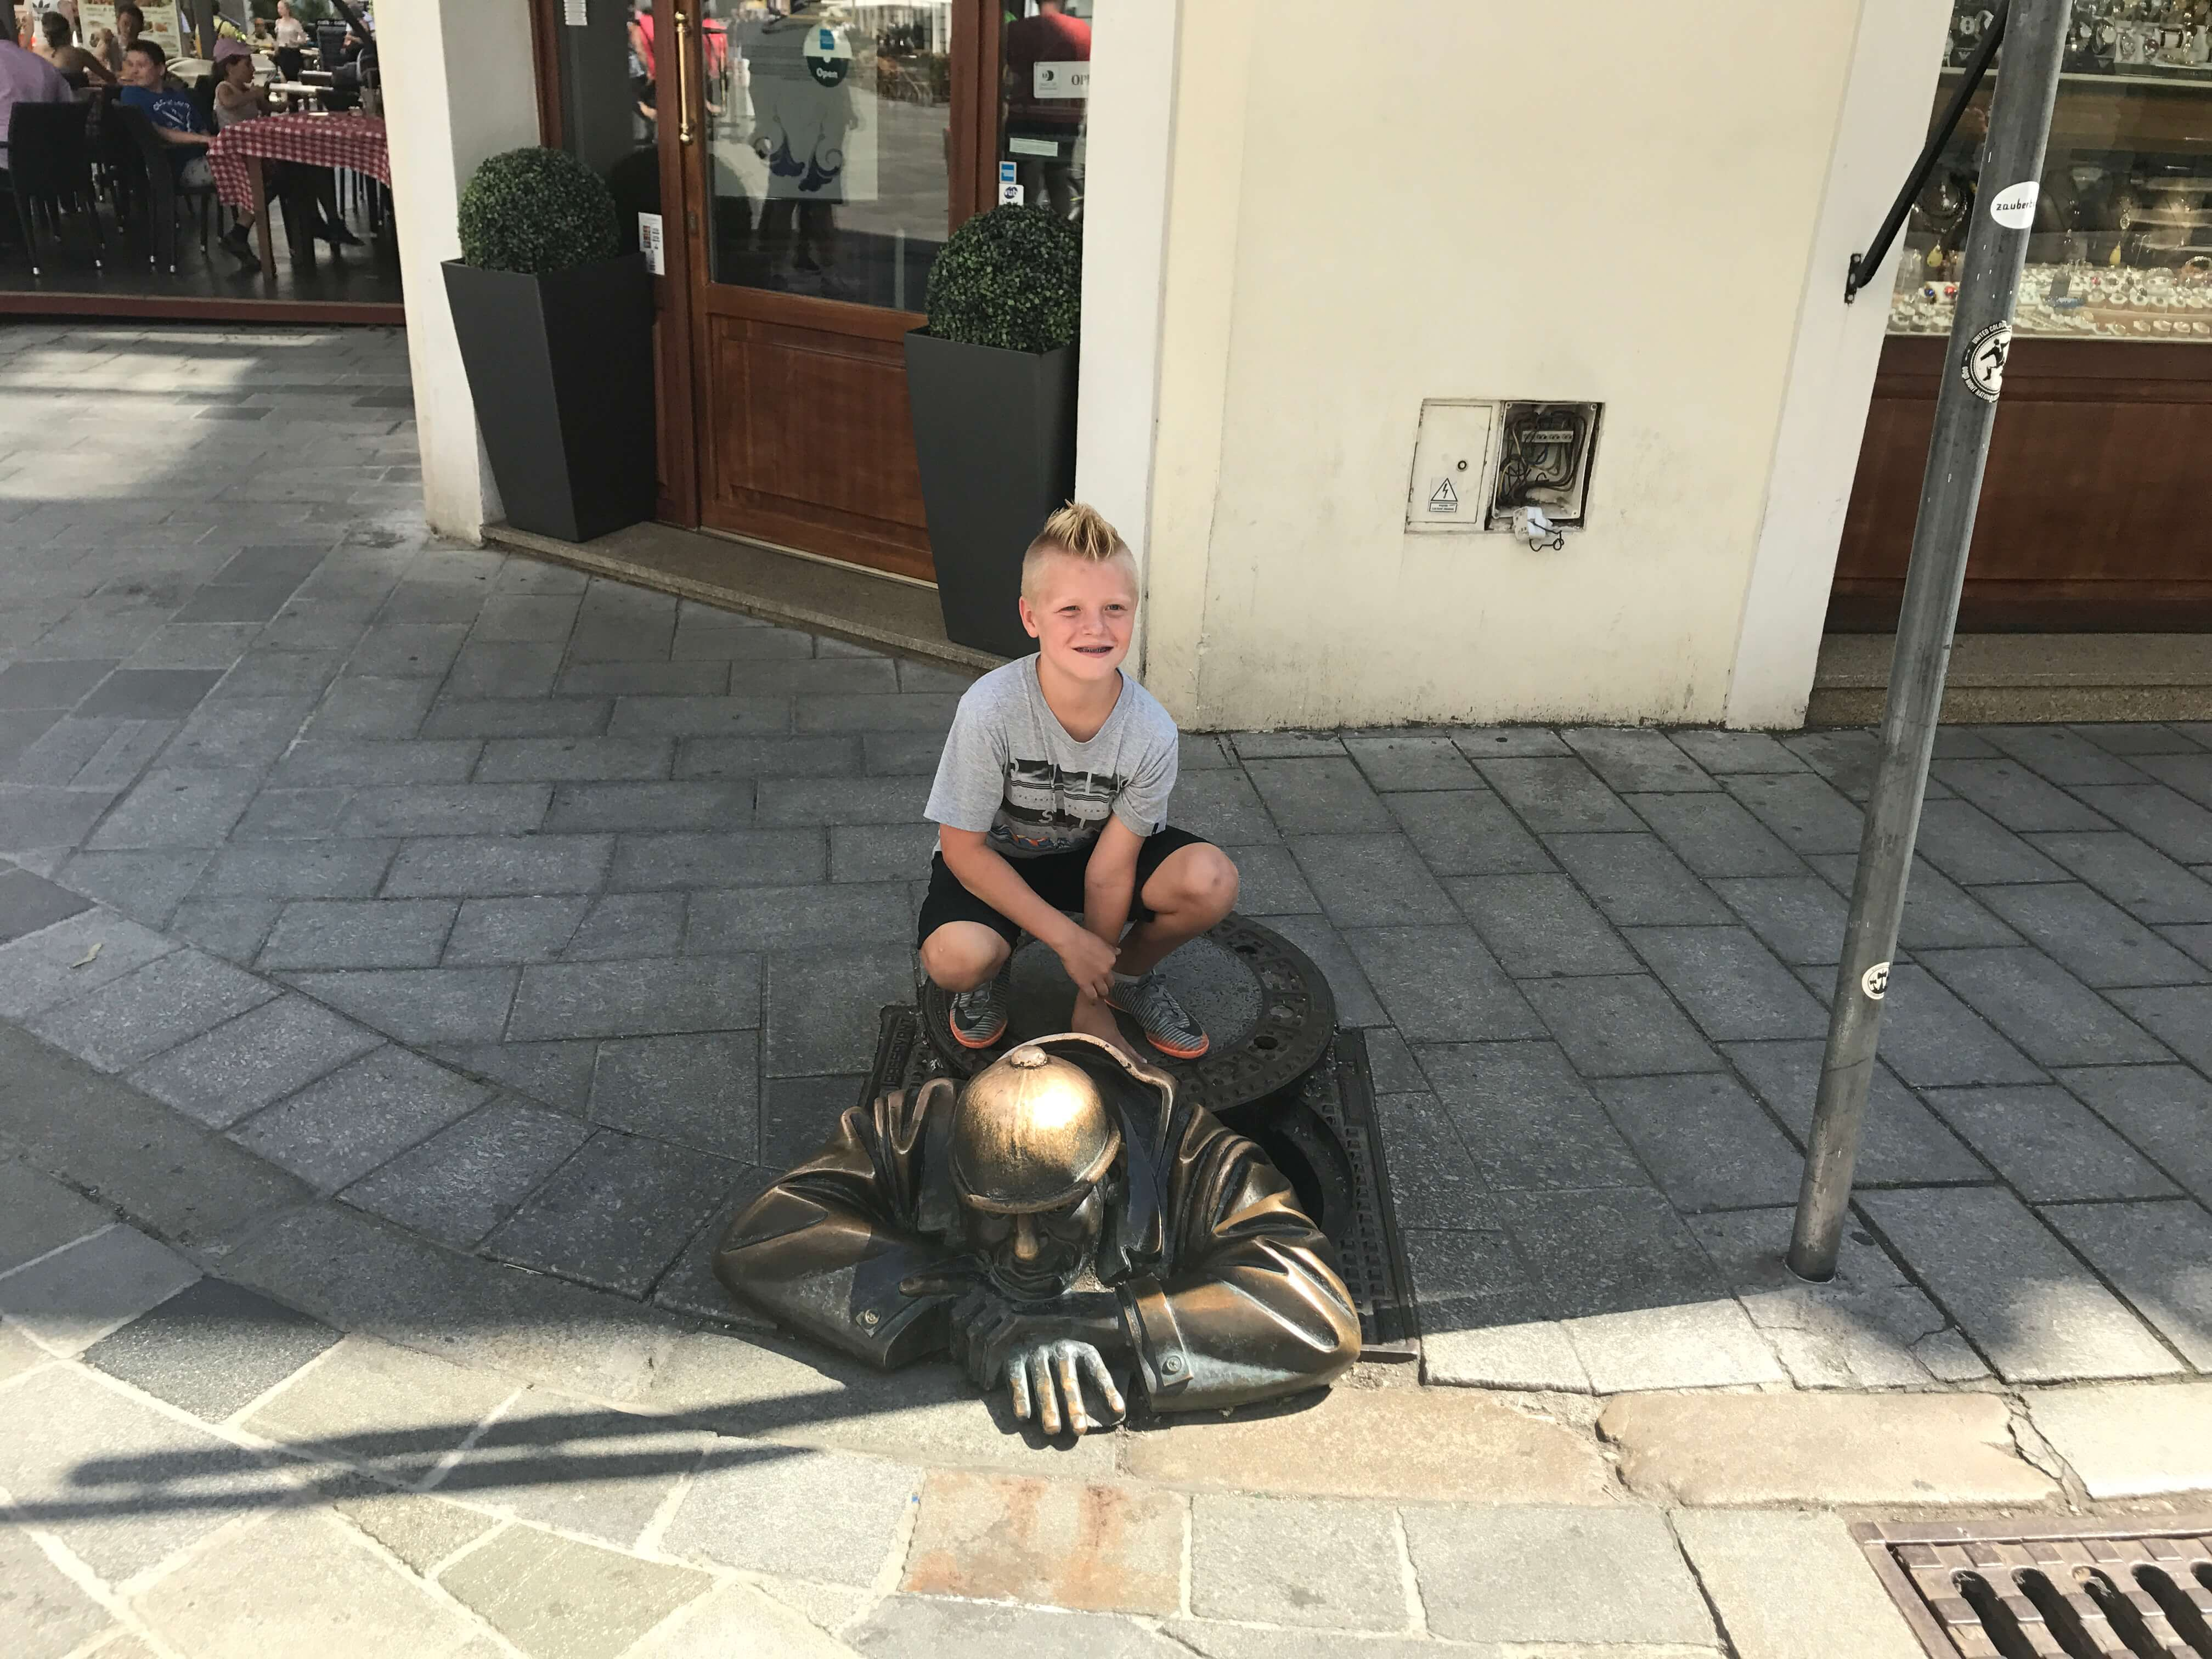 Aiden posing with Cumil the Man at Work statue.